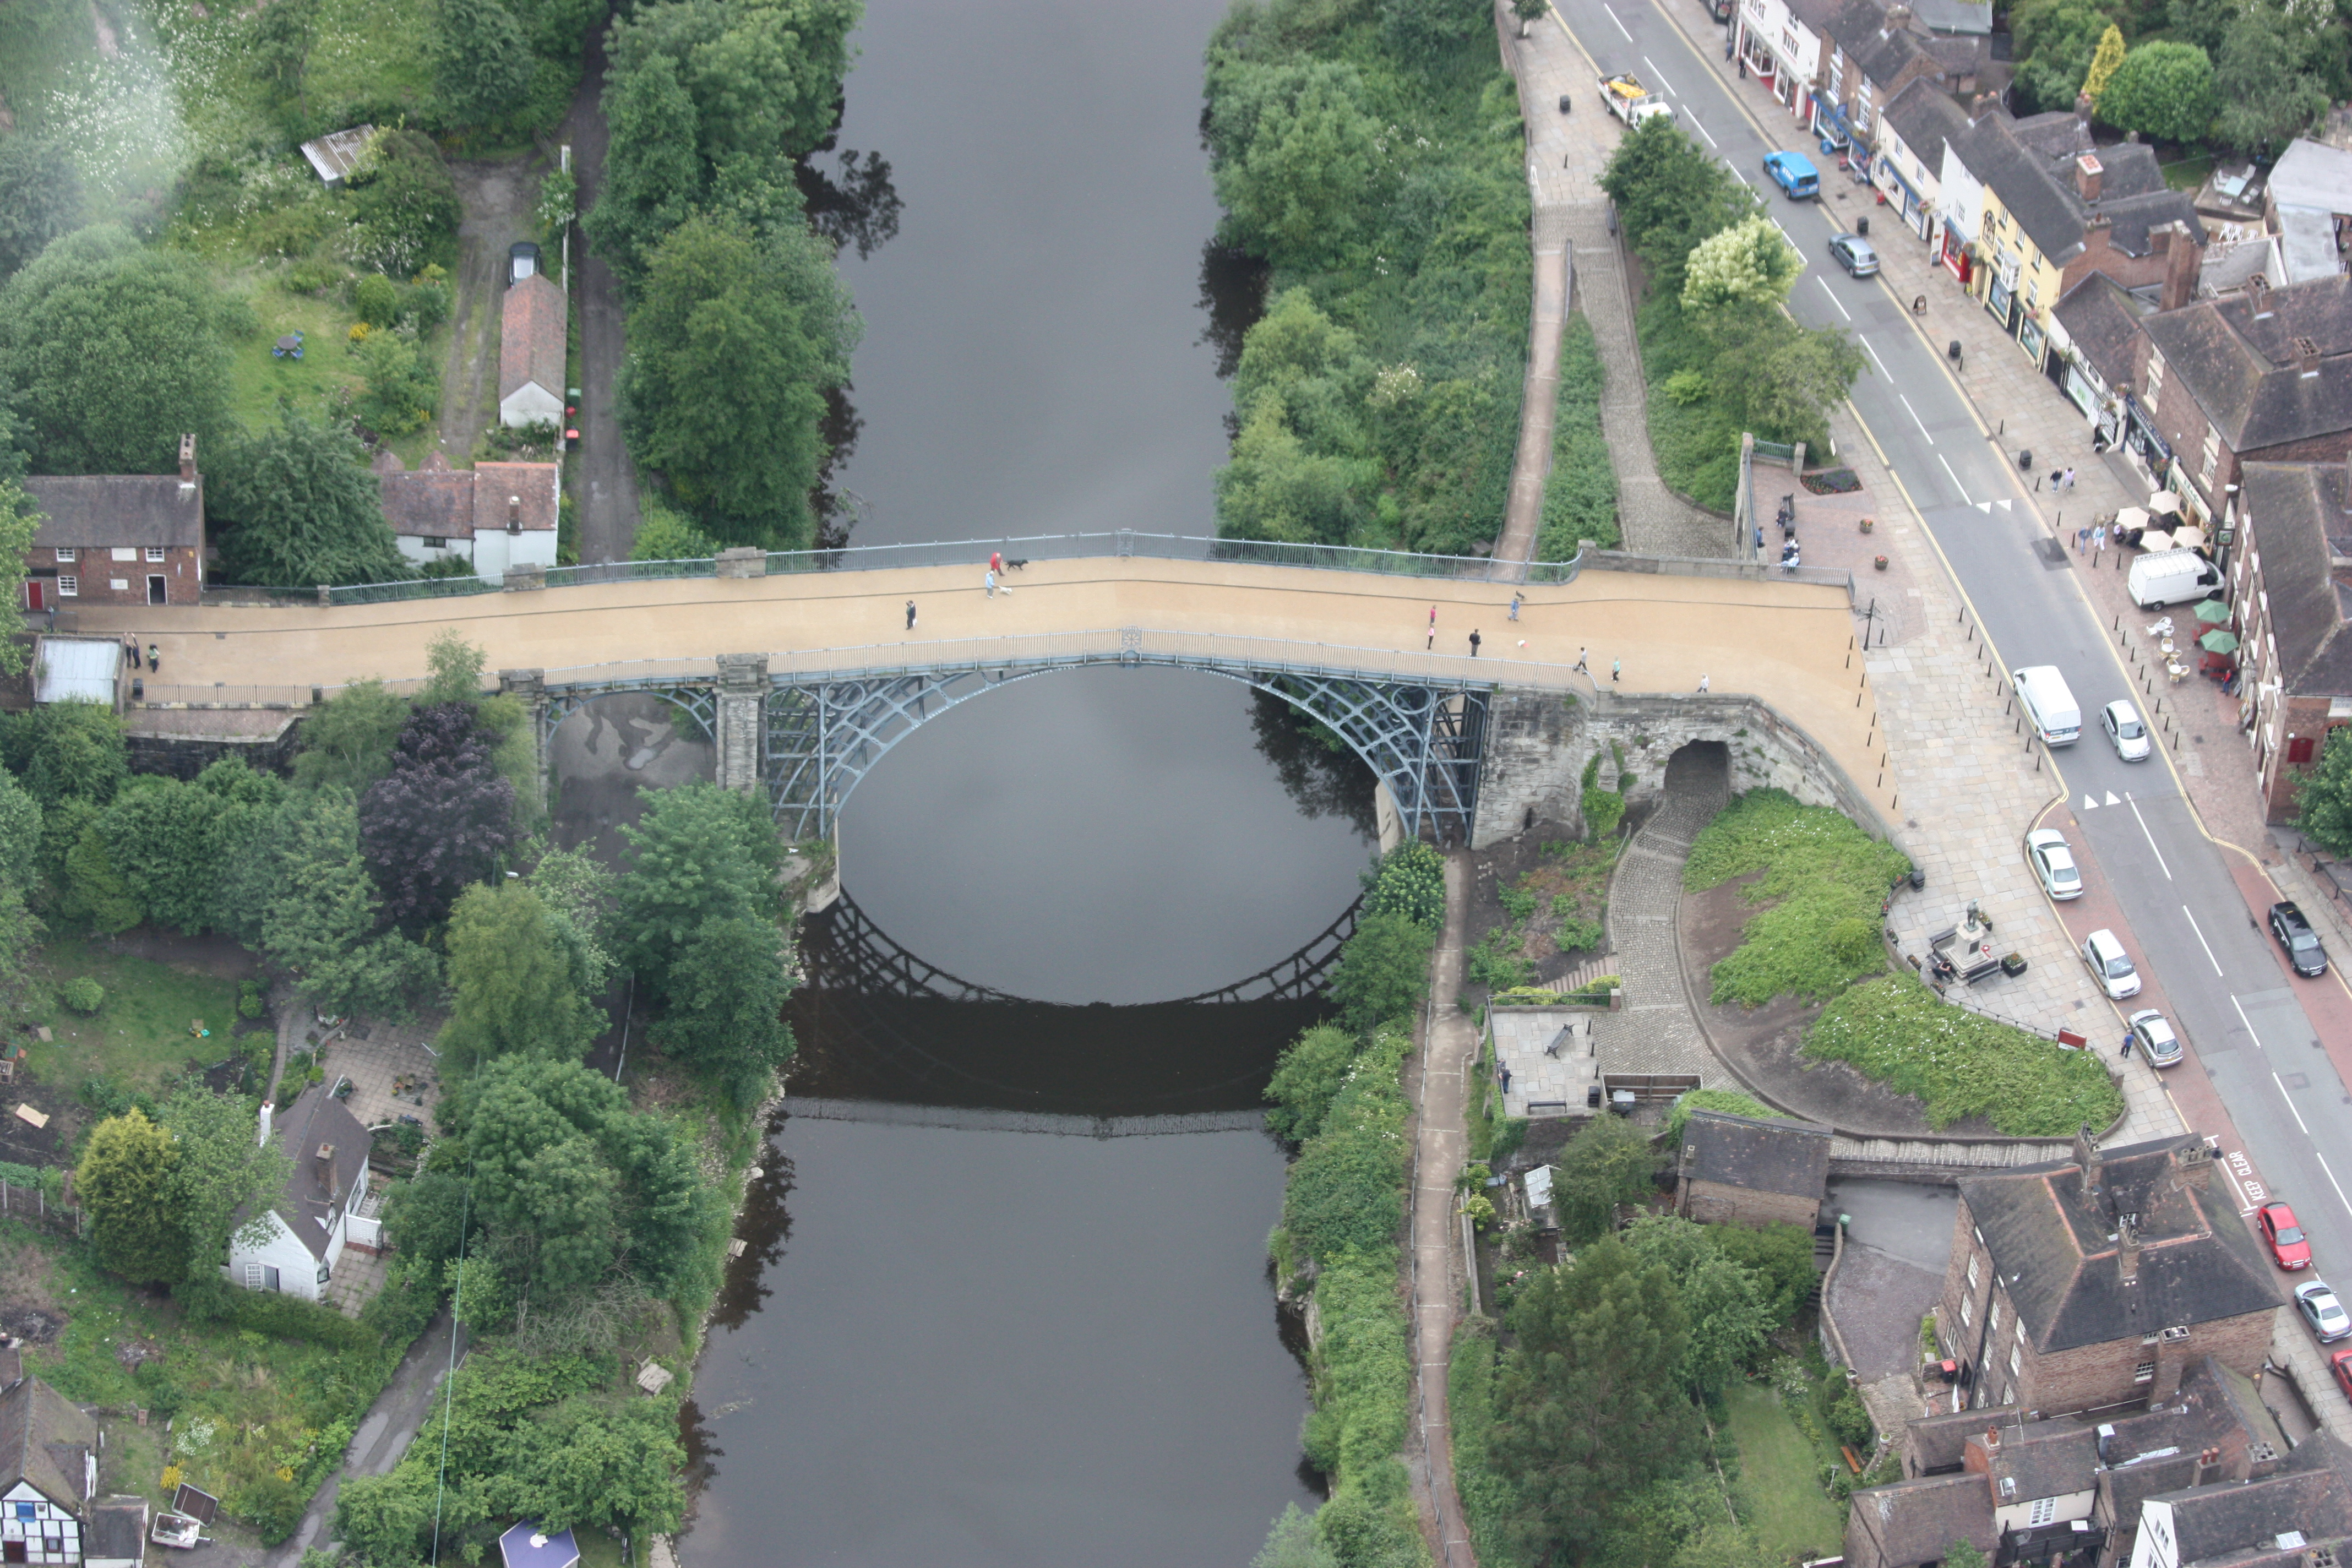 The first iron bridge, built at Coalbrookdale, England, in 1781. Its engineers used the same design they would have used for a masonry bridge. Within a hundred years, however, structures were being designed using scientific methods and quantitative design processes that made it possible to predict the performance of the new materials